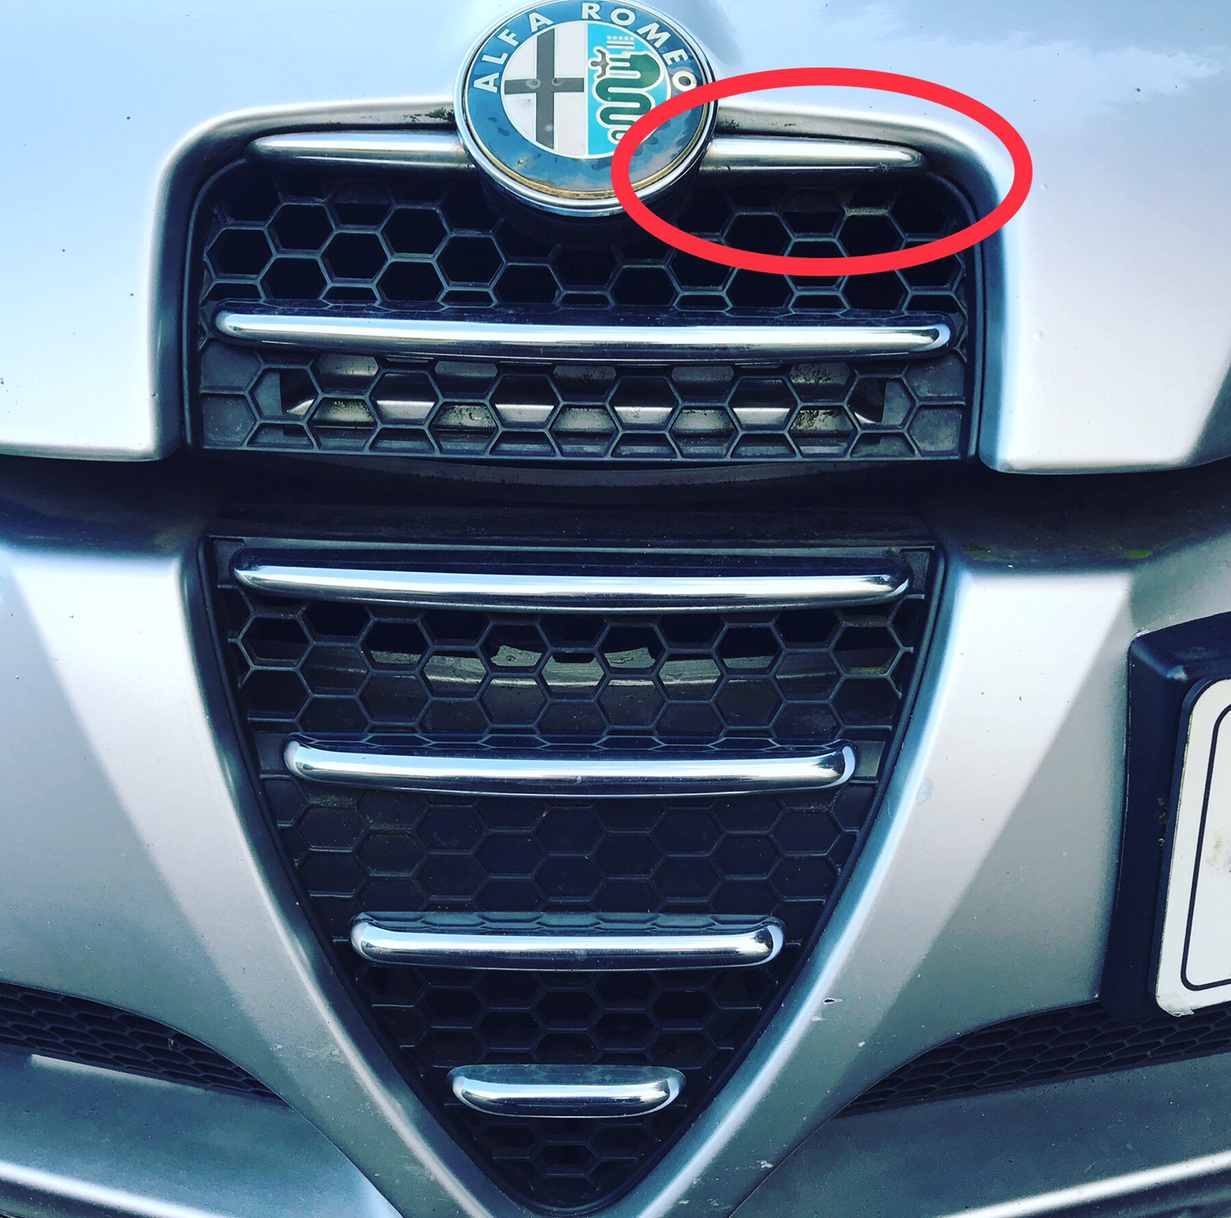 p3 top left grill